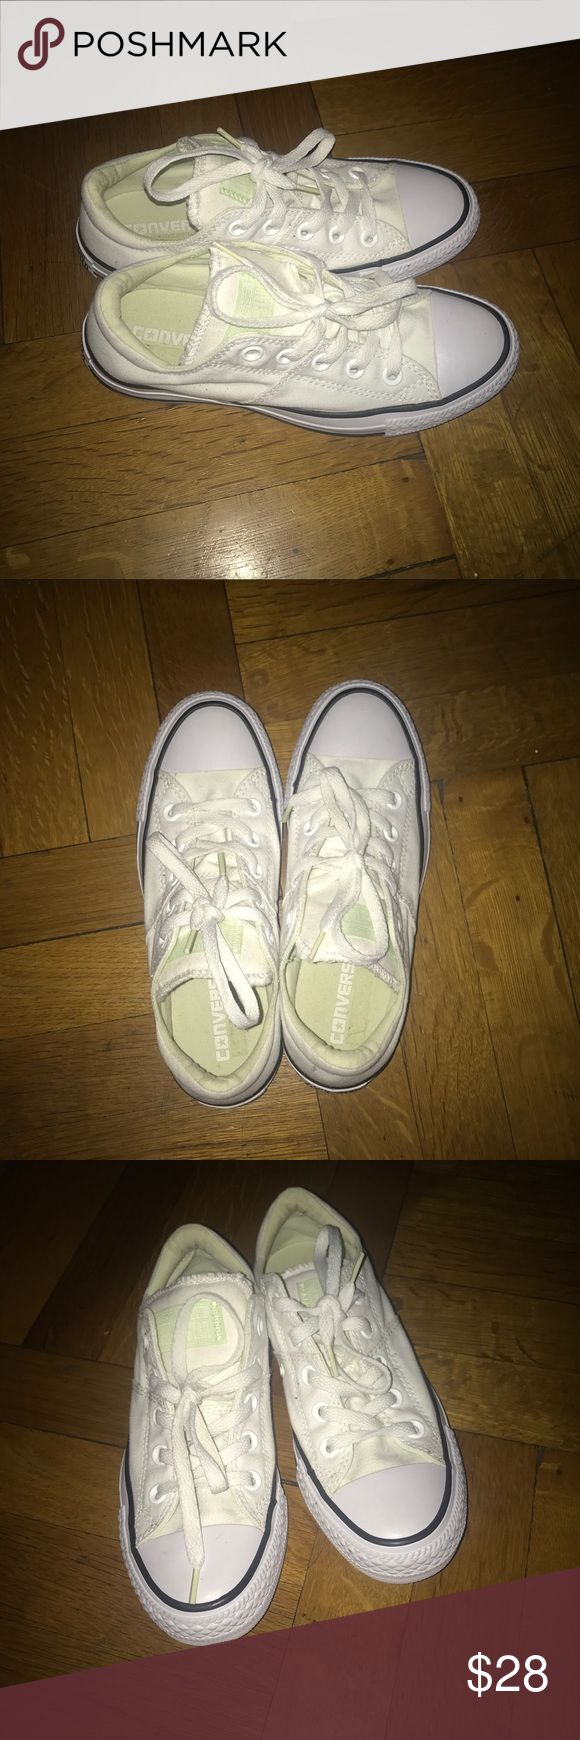 FINAL SALE🎉 LOW TOP WHITE AND MINT CONVERSE SIZE IS 6 IN WOMENS = 4.5 in KIDS Trendy white converse but with a suttle, cute and unique touch of mint!  ONLY WORN ONCE ✅ Great Condition! FEEL FREE TO MAKE REASONABLE OFFERS! Converse Shoes